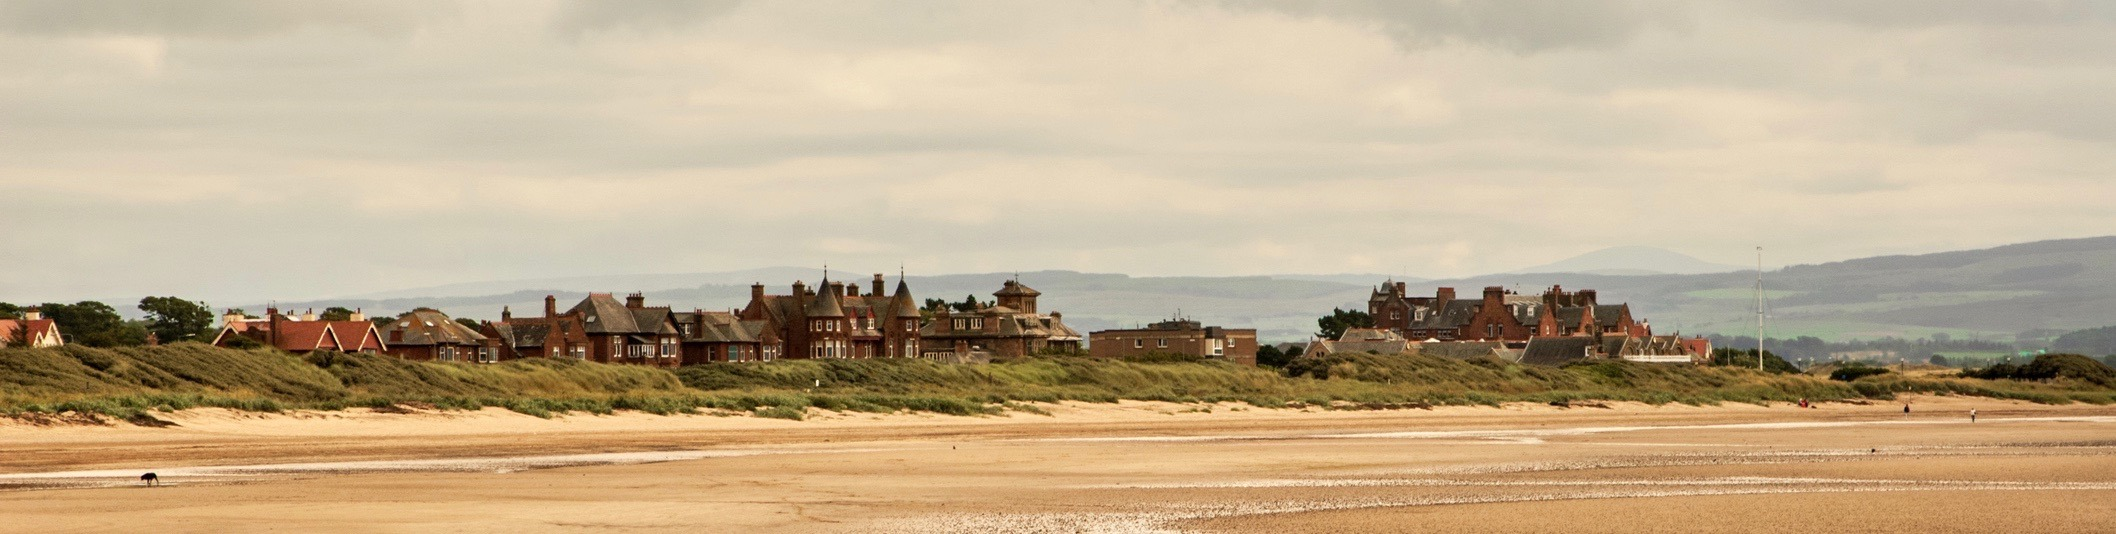 Superb Beach Holiday Cottages In Scotland Coastal Self Catering Interior Design Ideas Tzicisoteloinfo